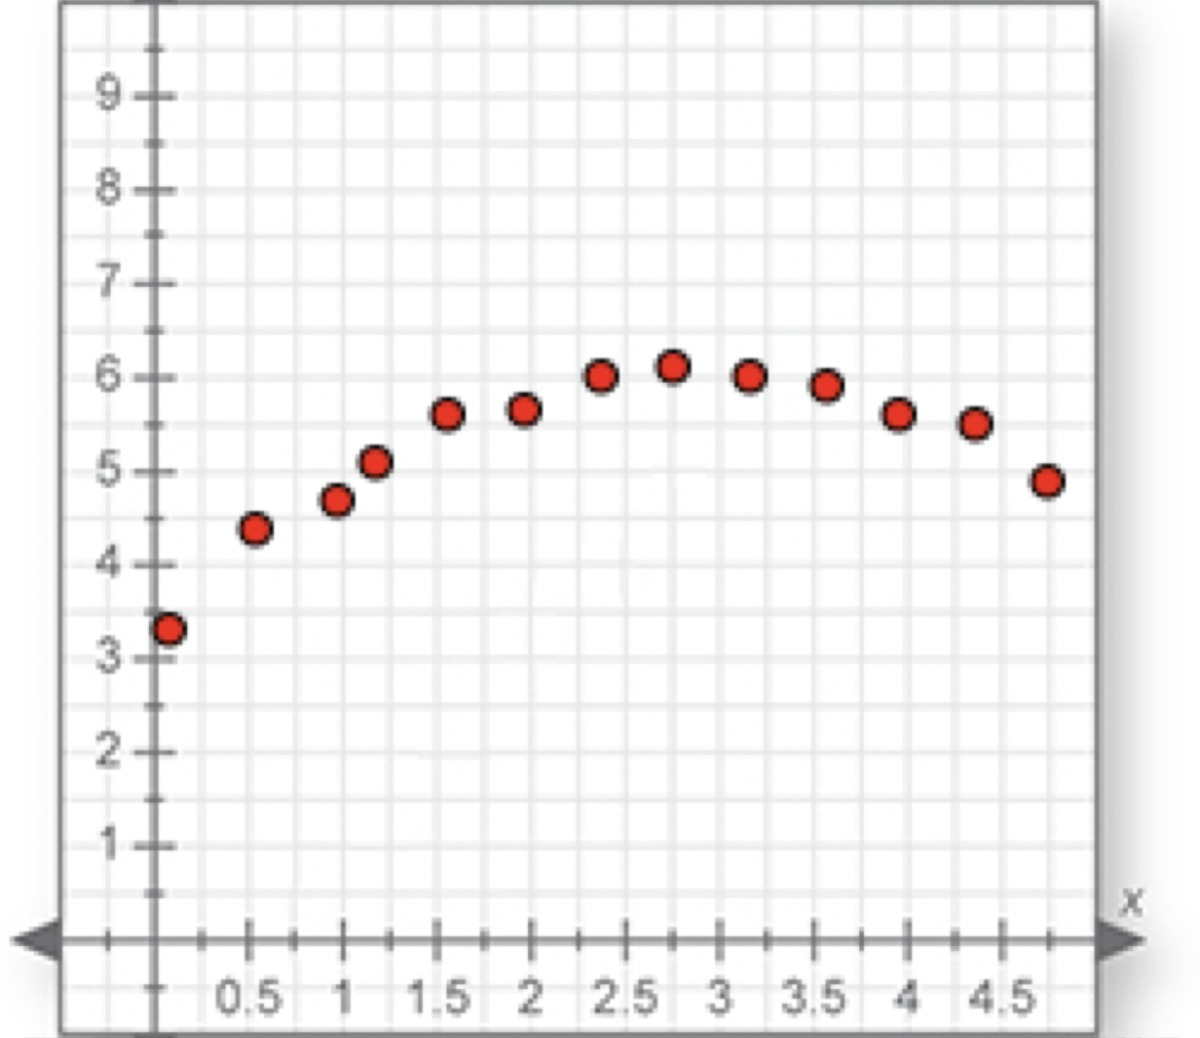 Please Help By Visual Inspection Determine The Best Fitting Regression Model For The Data Plot